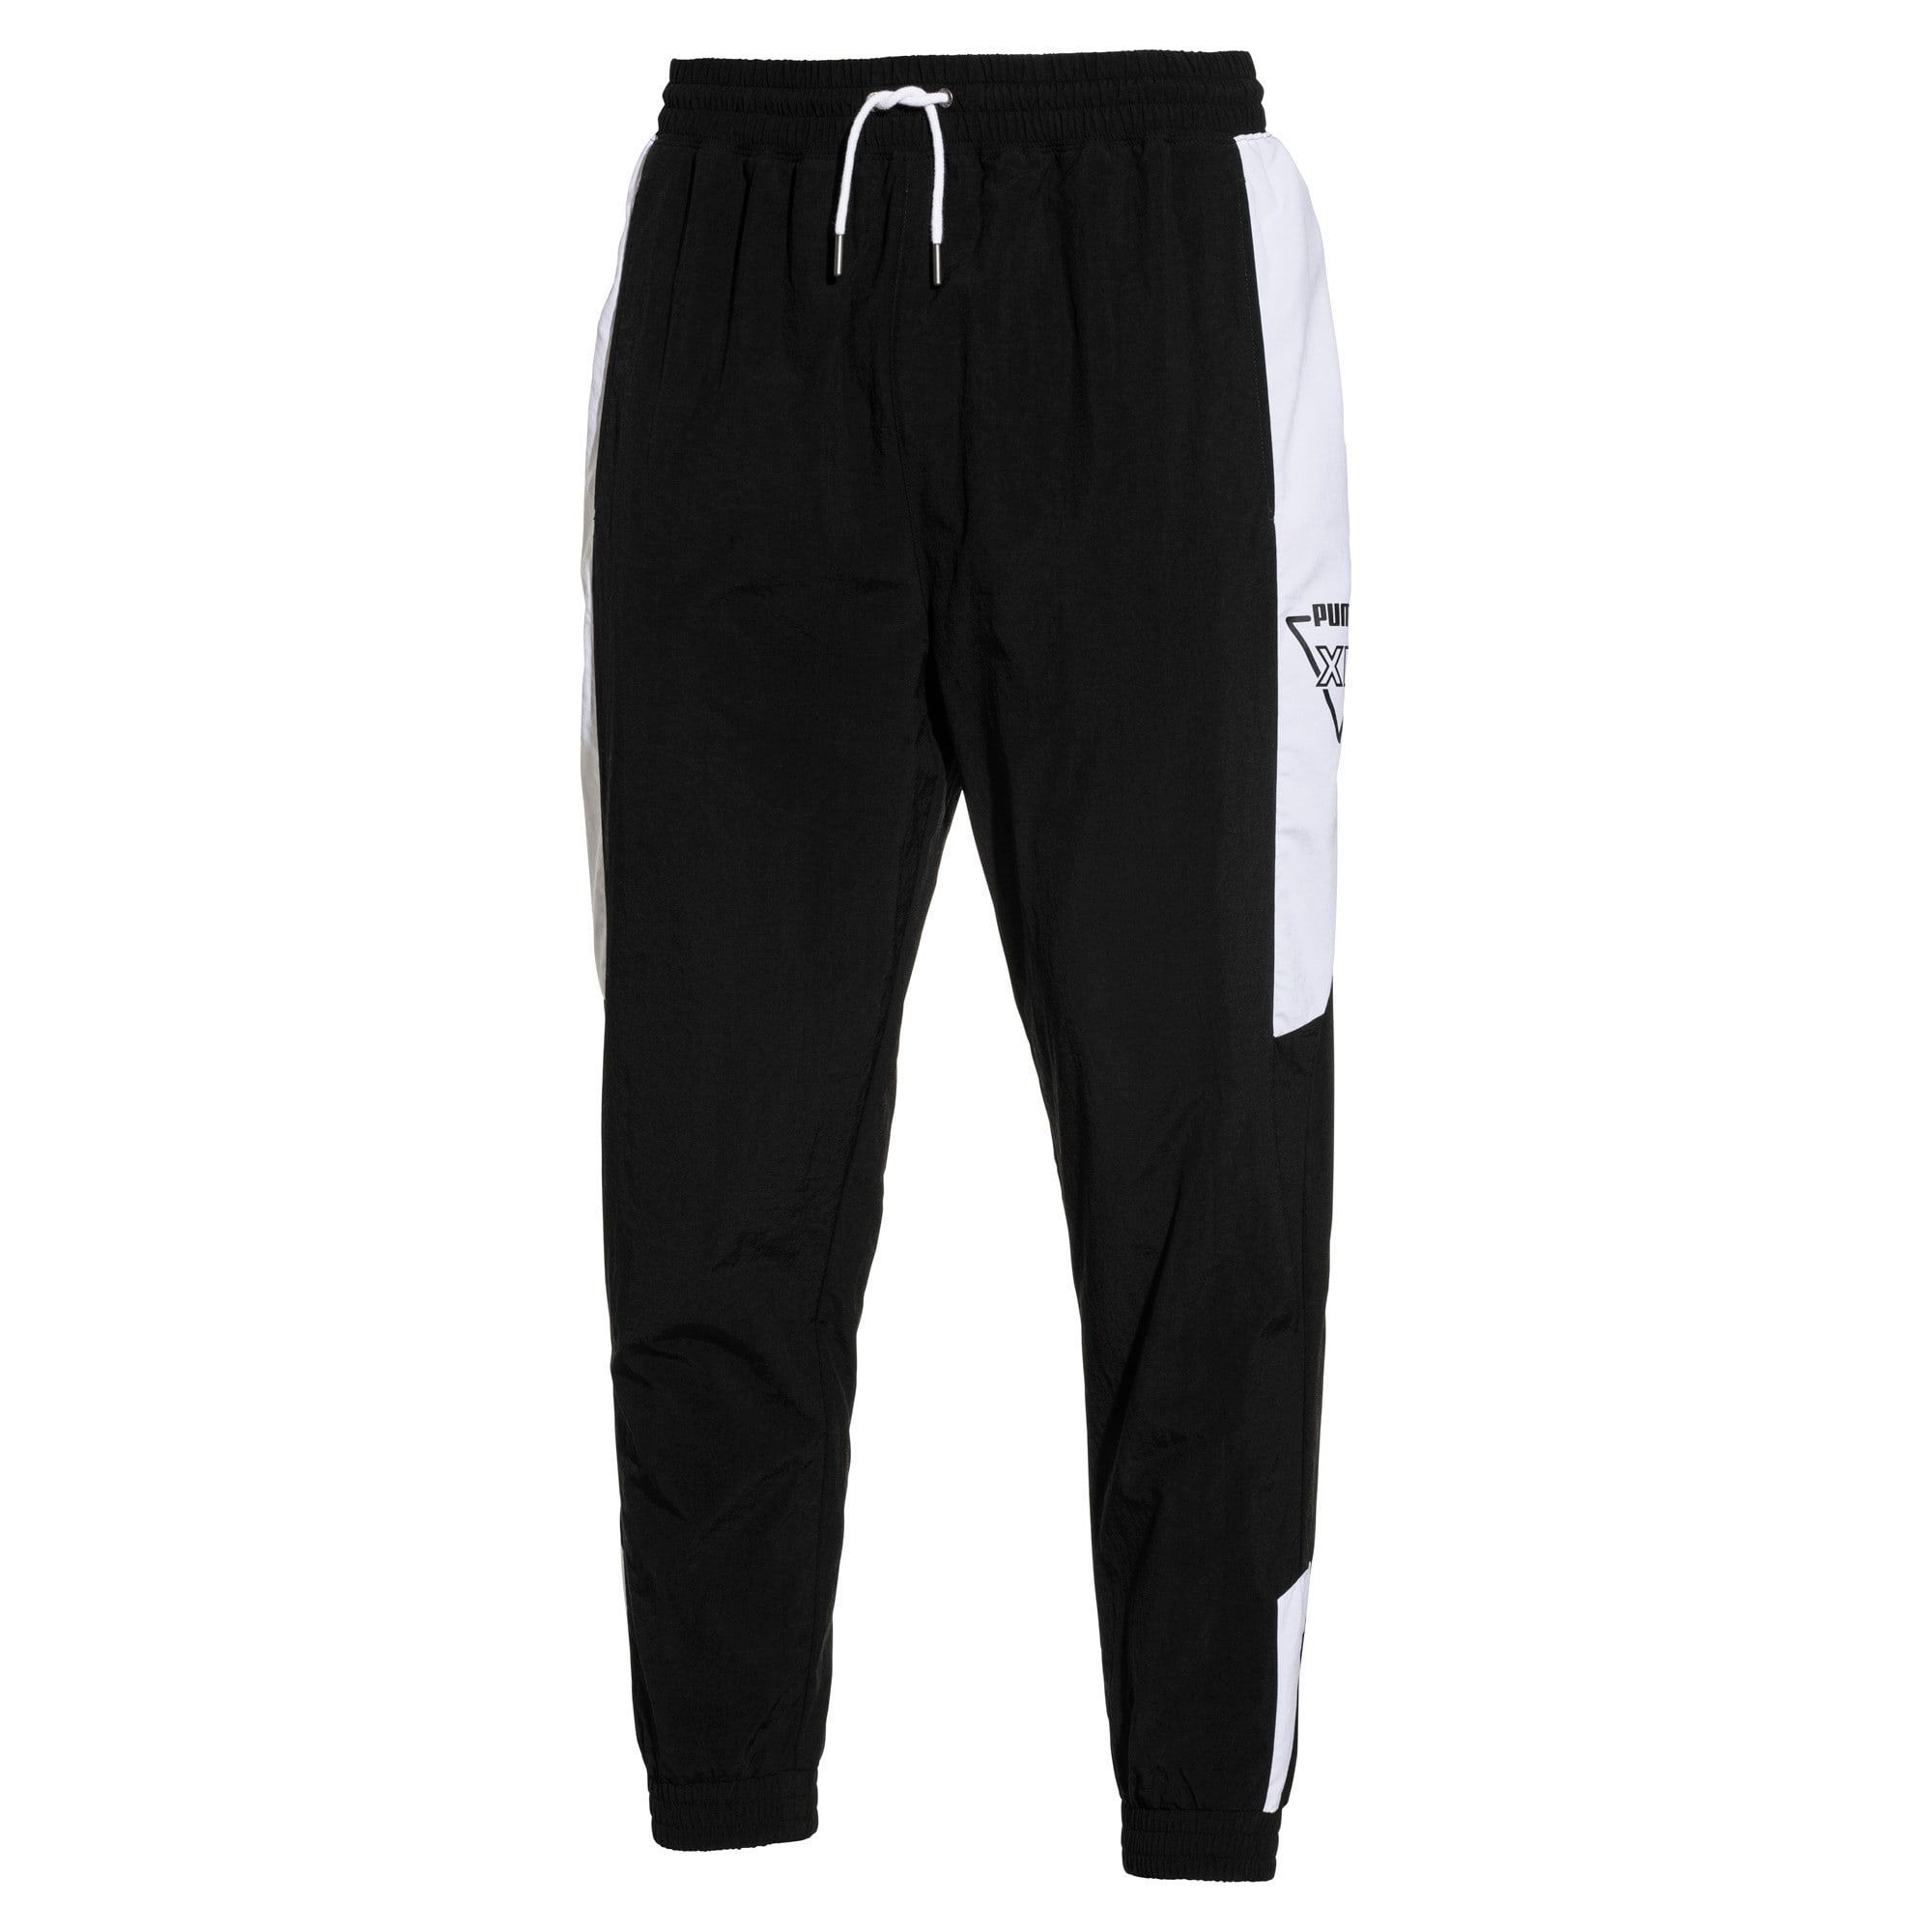 Thumbnail 1 of Homage to Archive Track Pants, Puma Black, medium